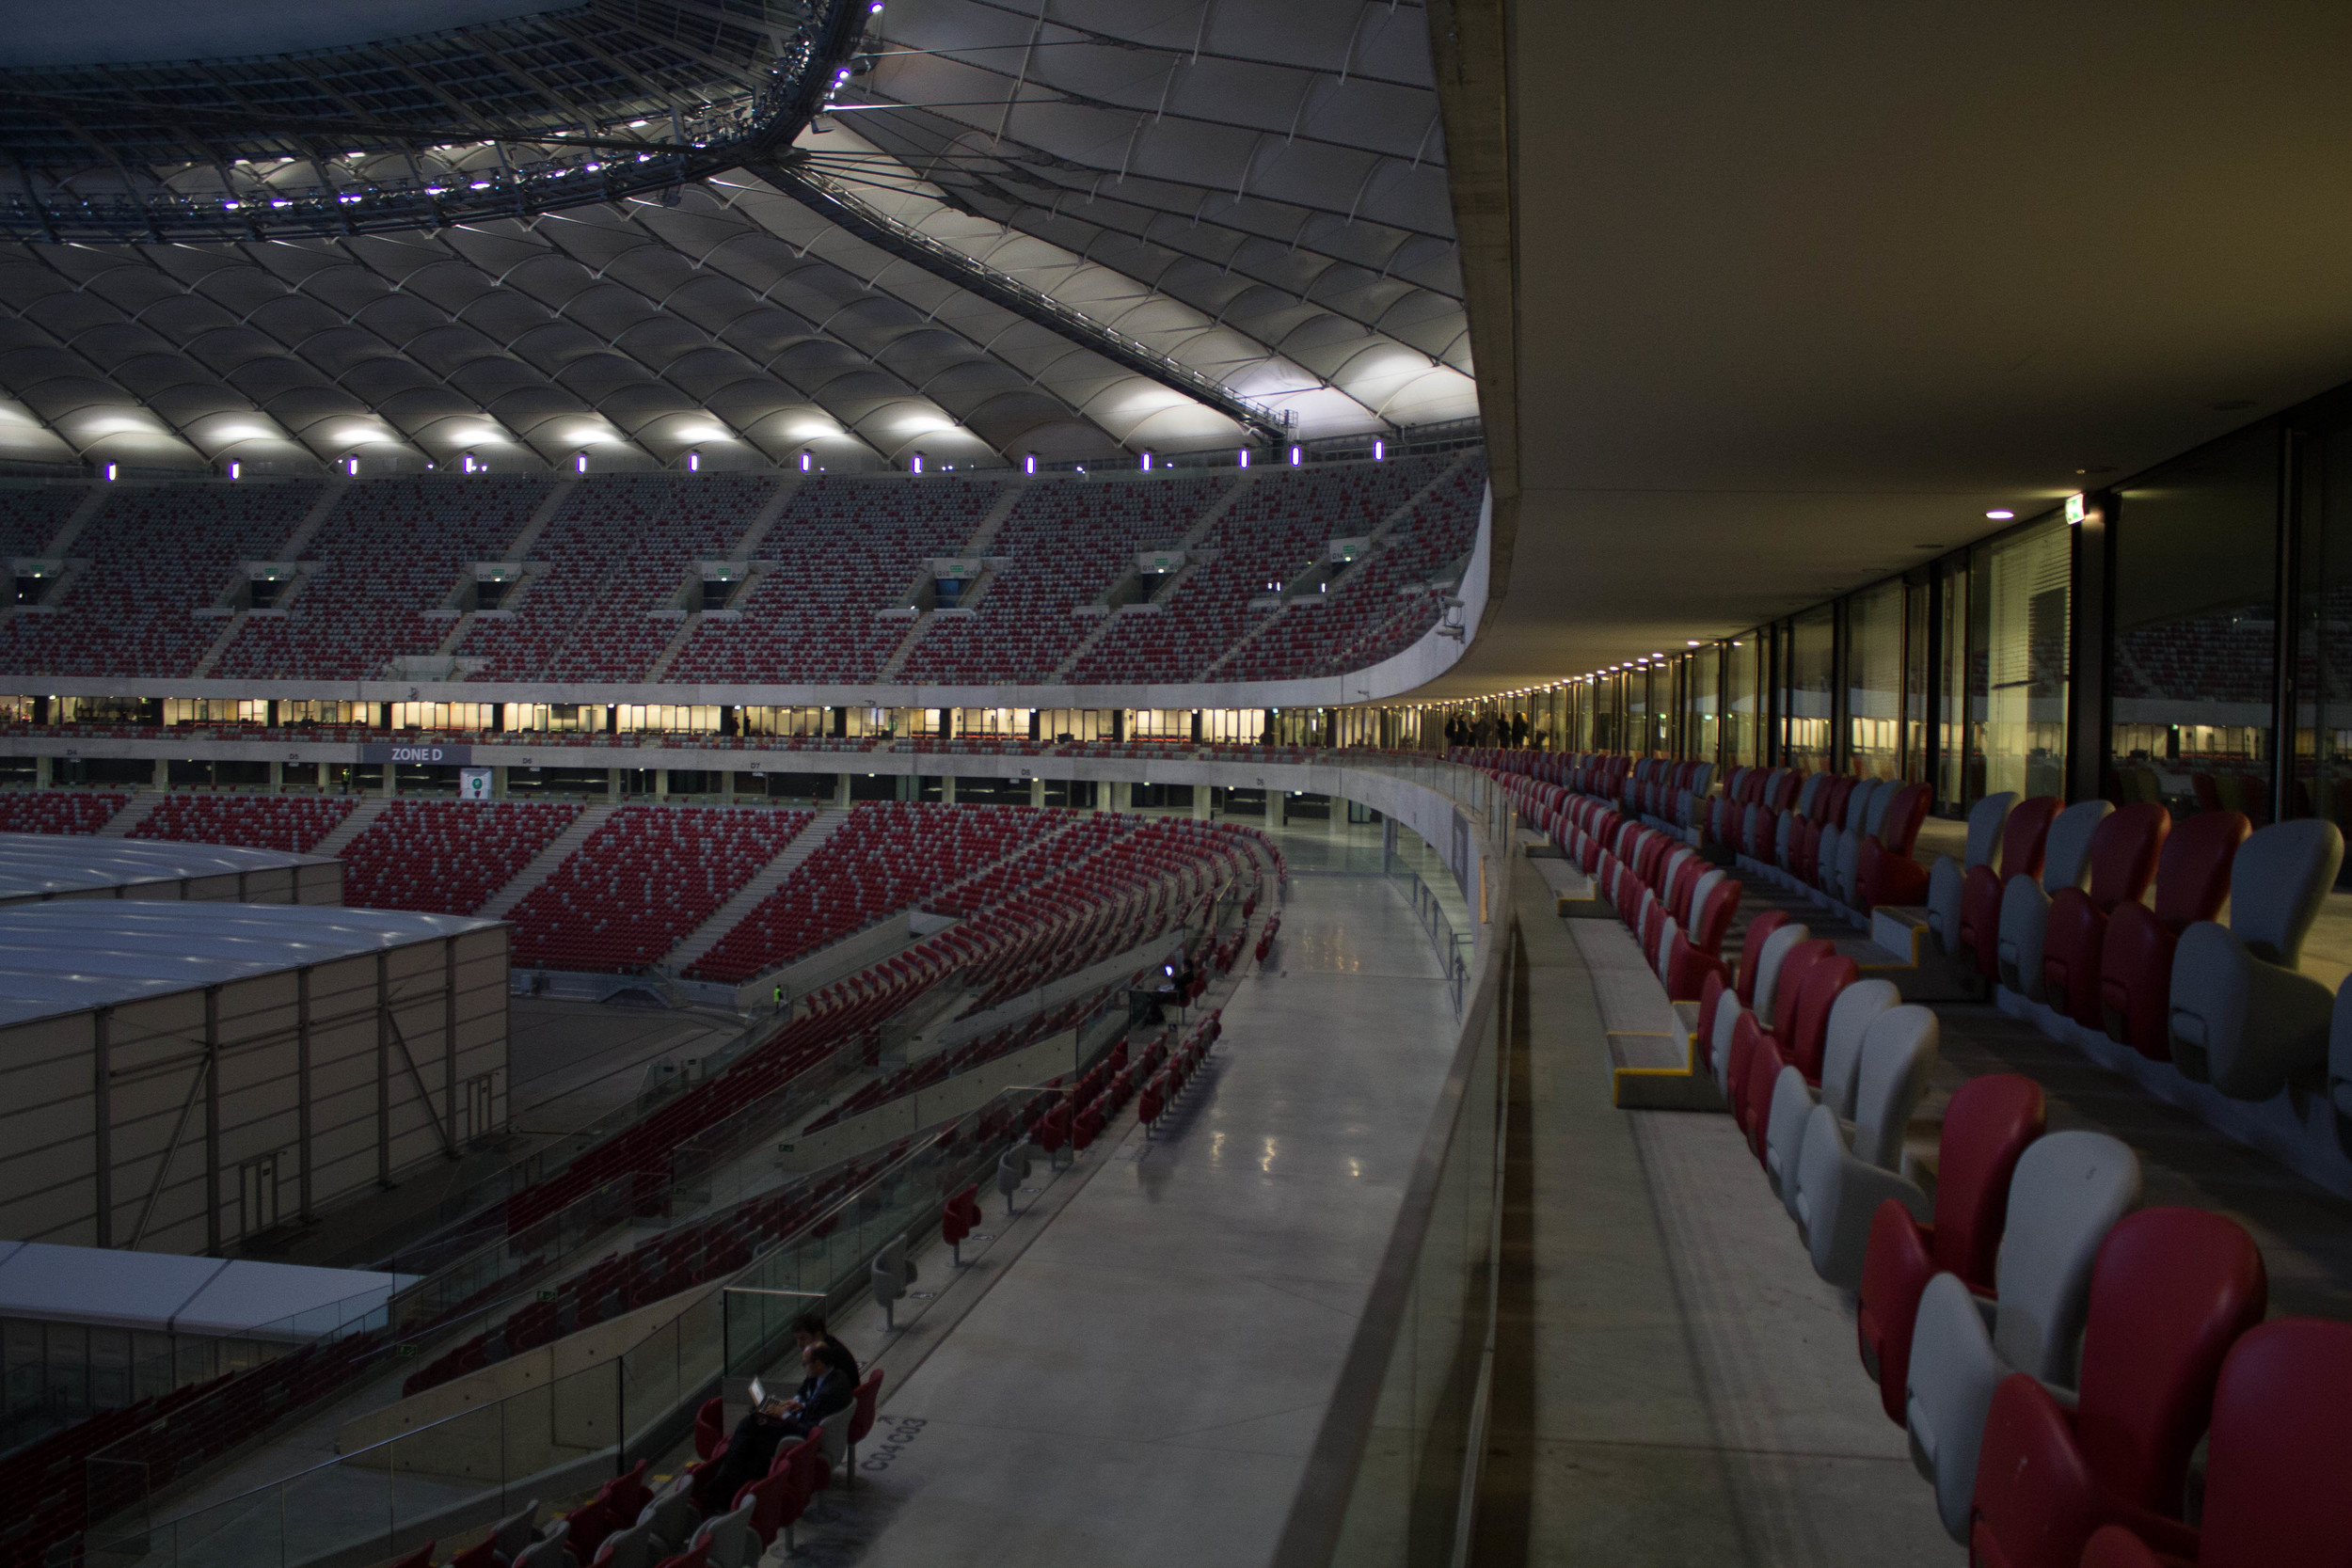 This stadium is as empty as the promises likely to be made in it. Photo credit: David Tong